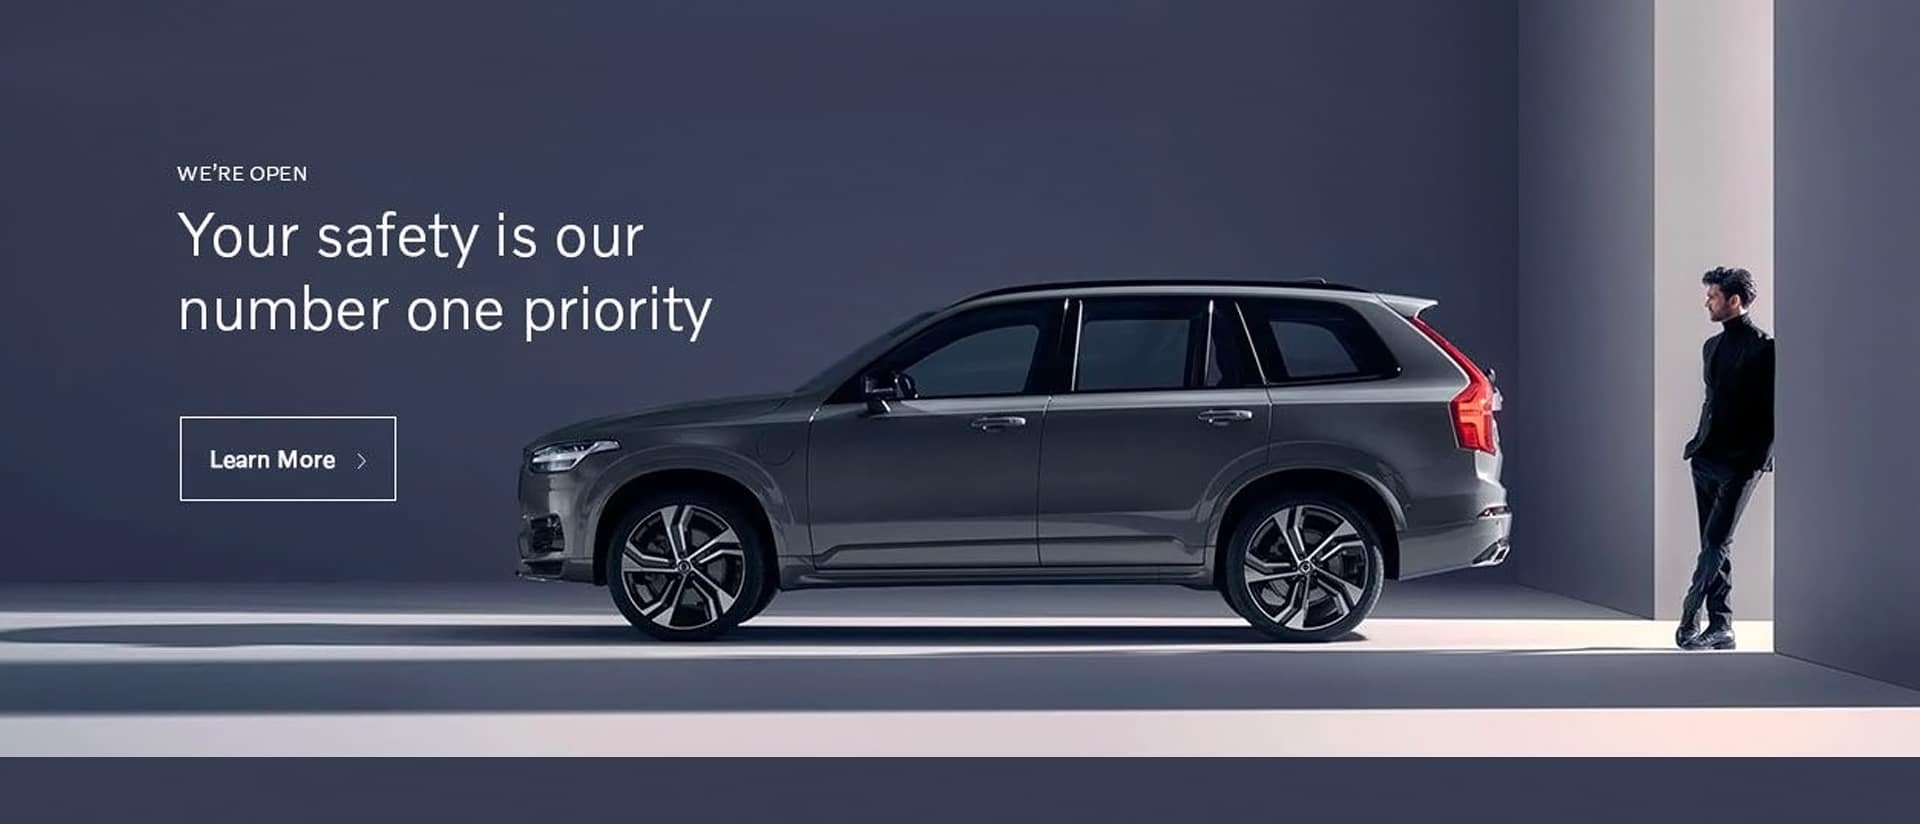 Volvo Covid Banner. Safety is our priority.